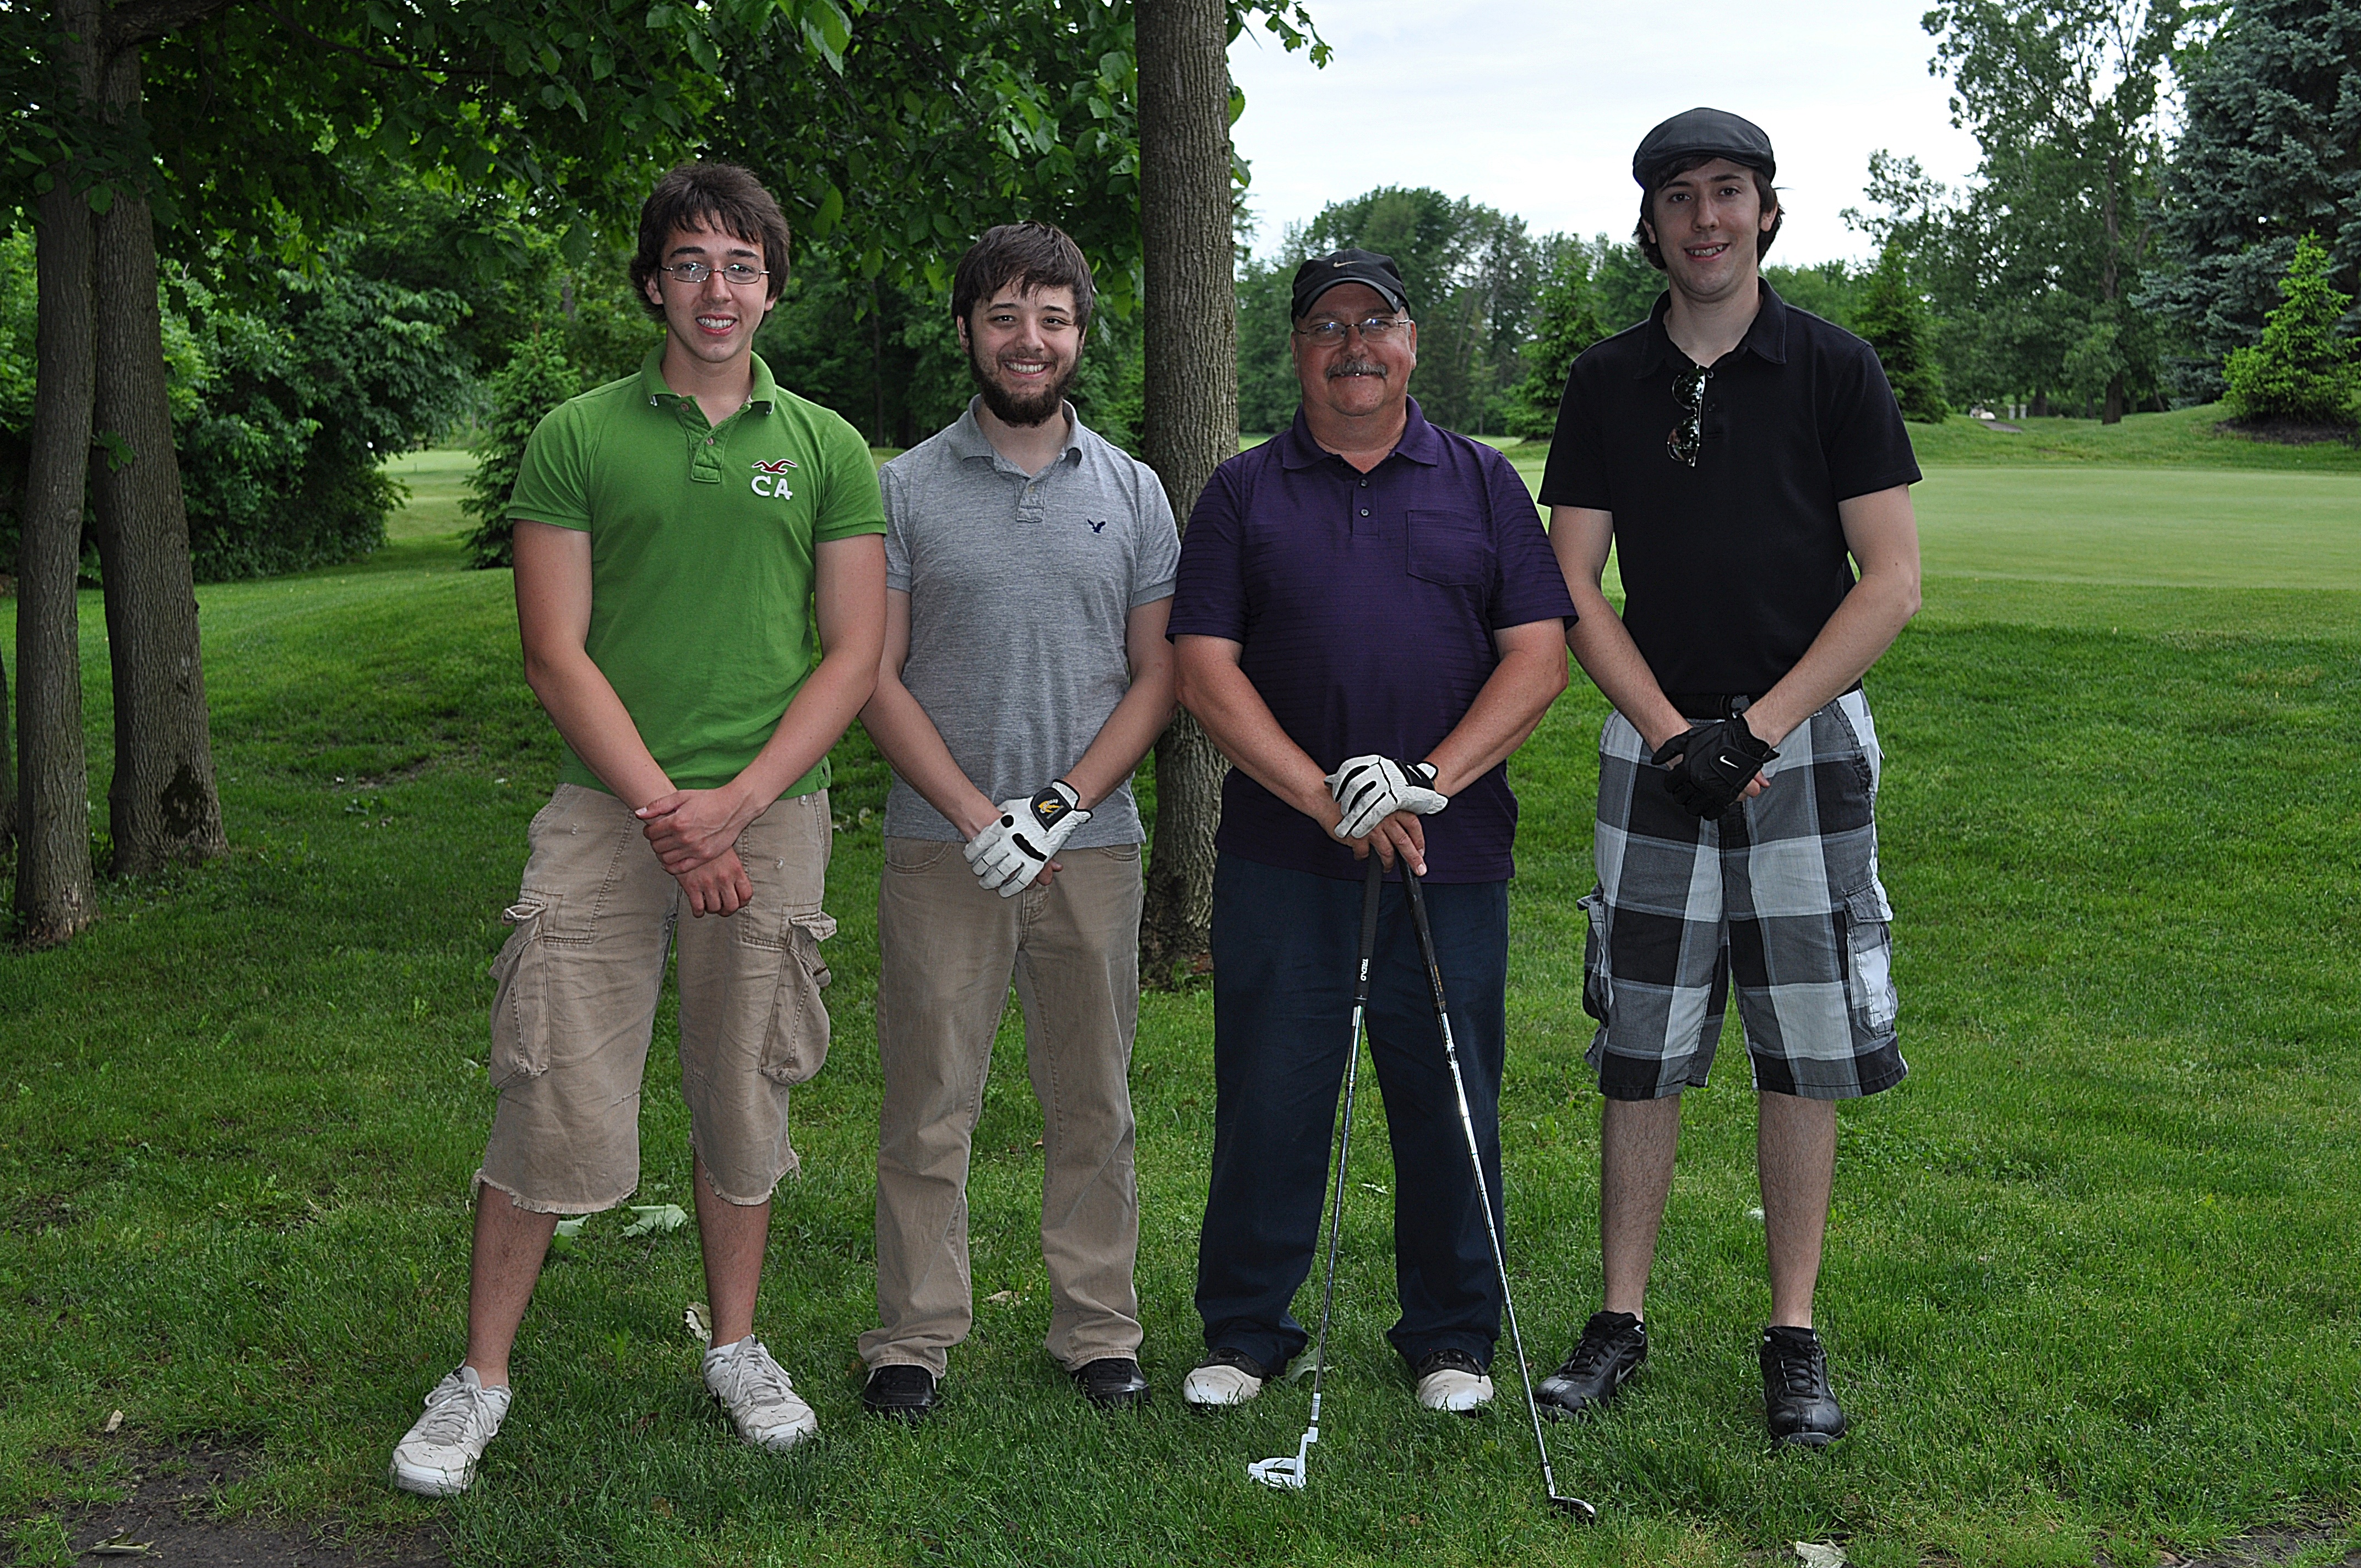 Pastor Larry's Team at the 2013 FCFC Outing